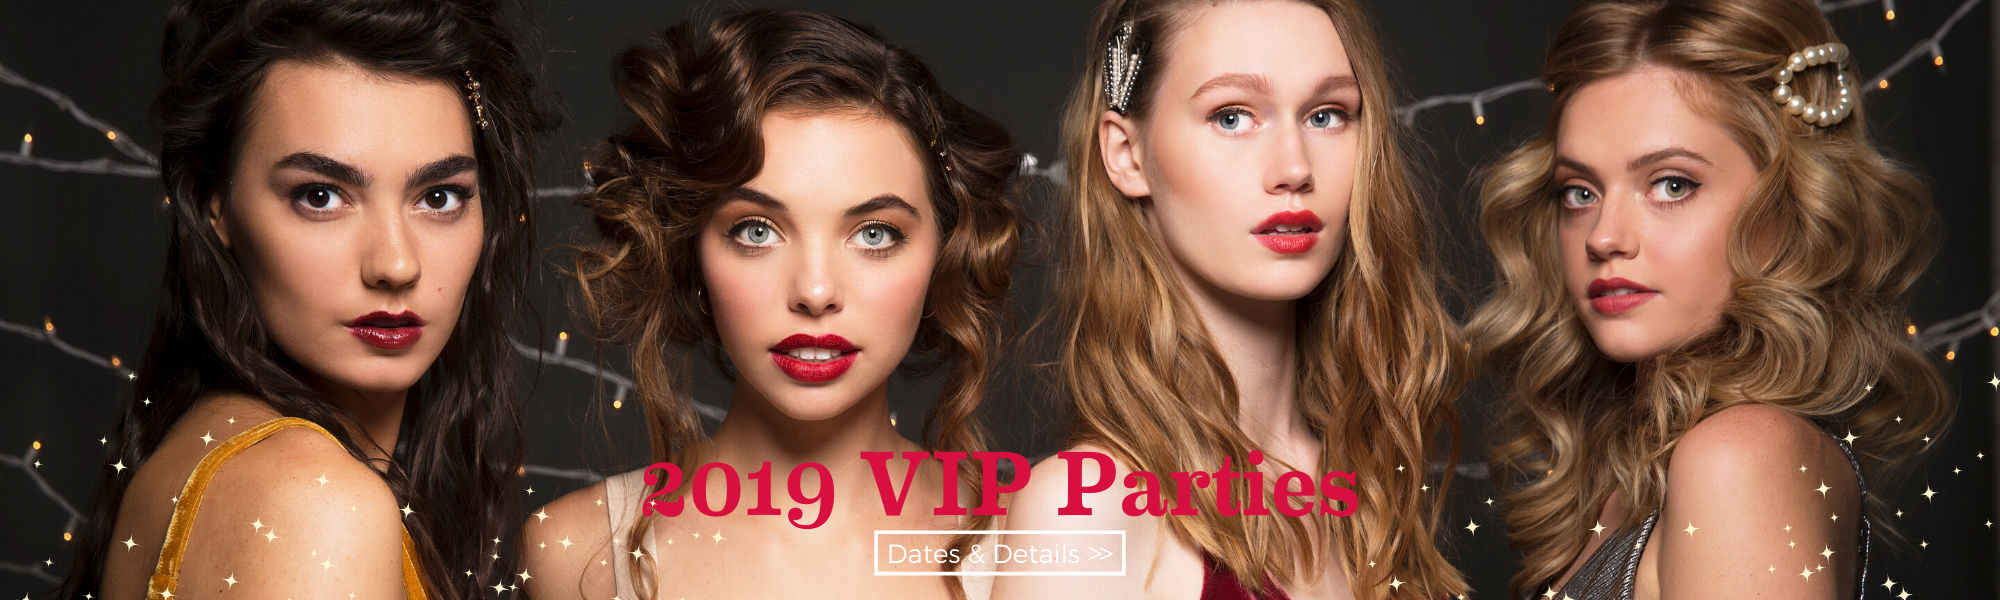 Please join us for our 2019 VIP Parties to get your 2020 VIP card plus exclusive deals and refreshments.